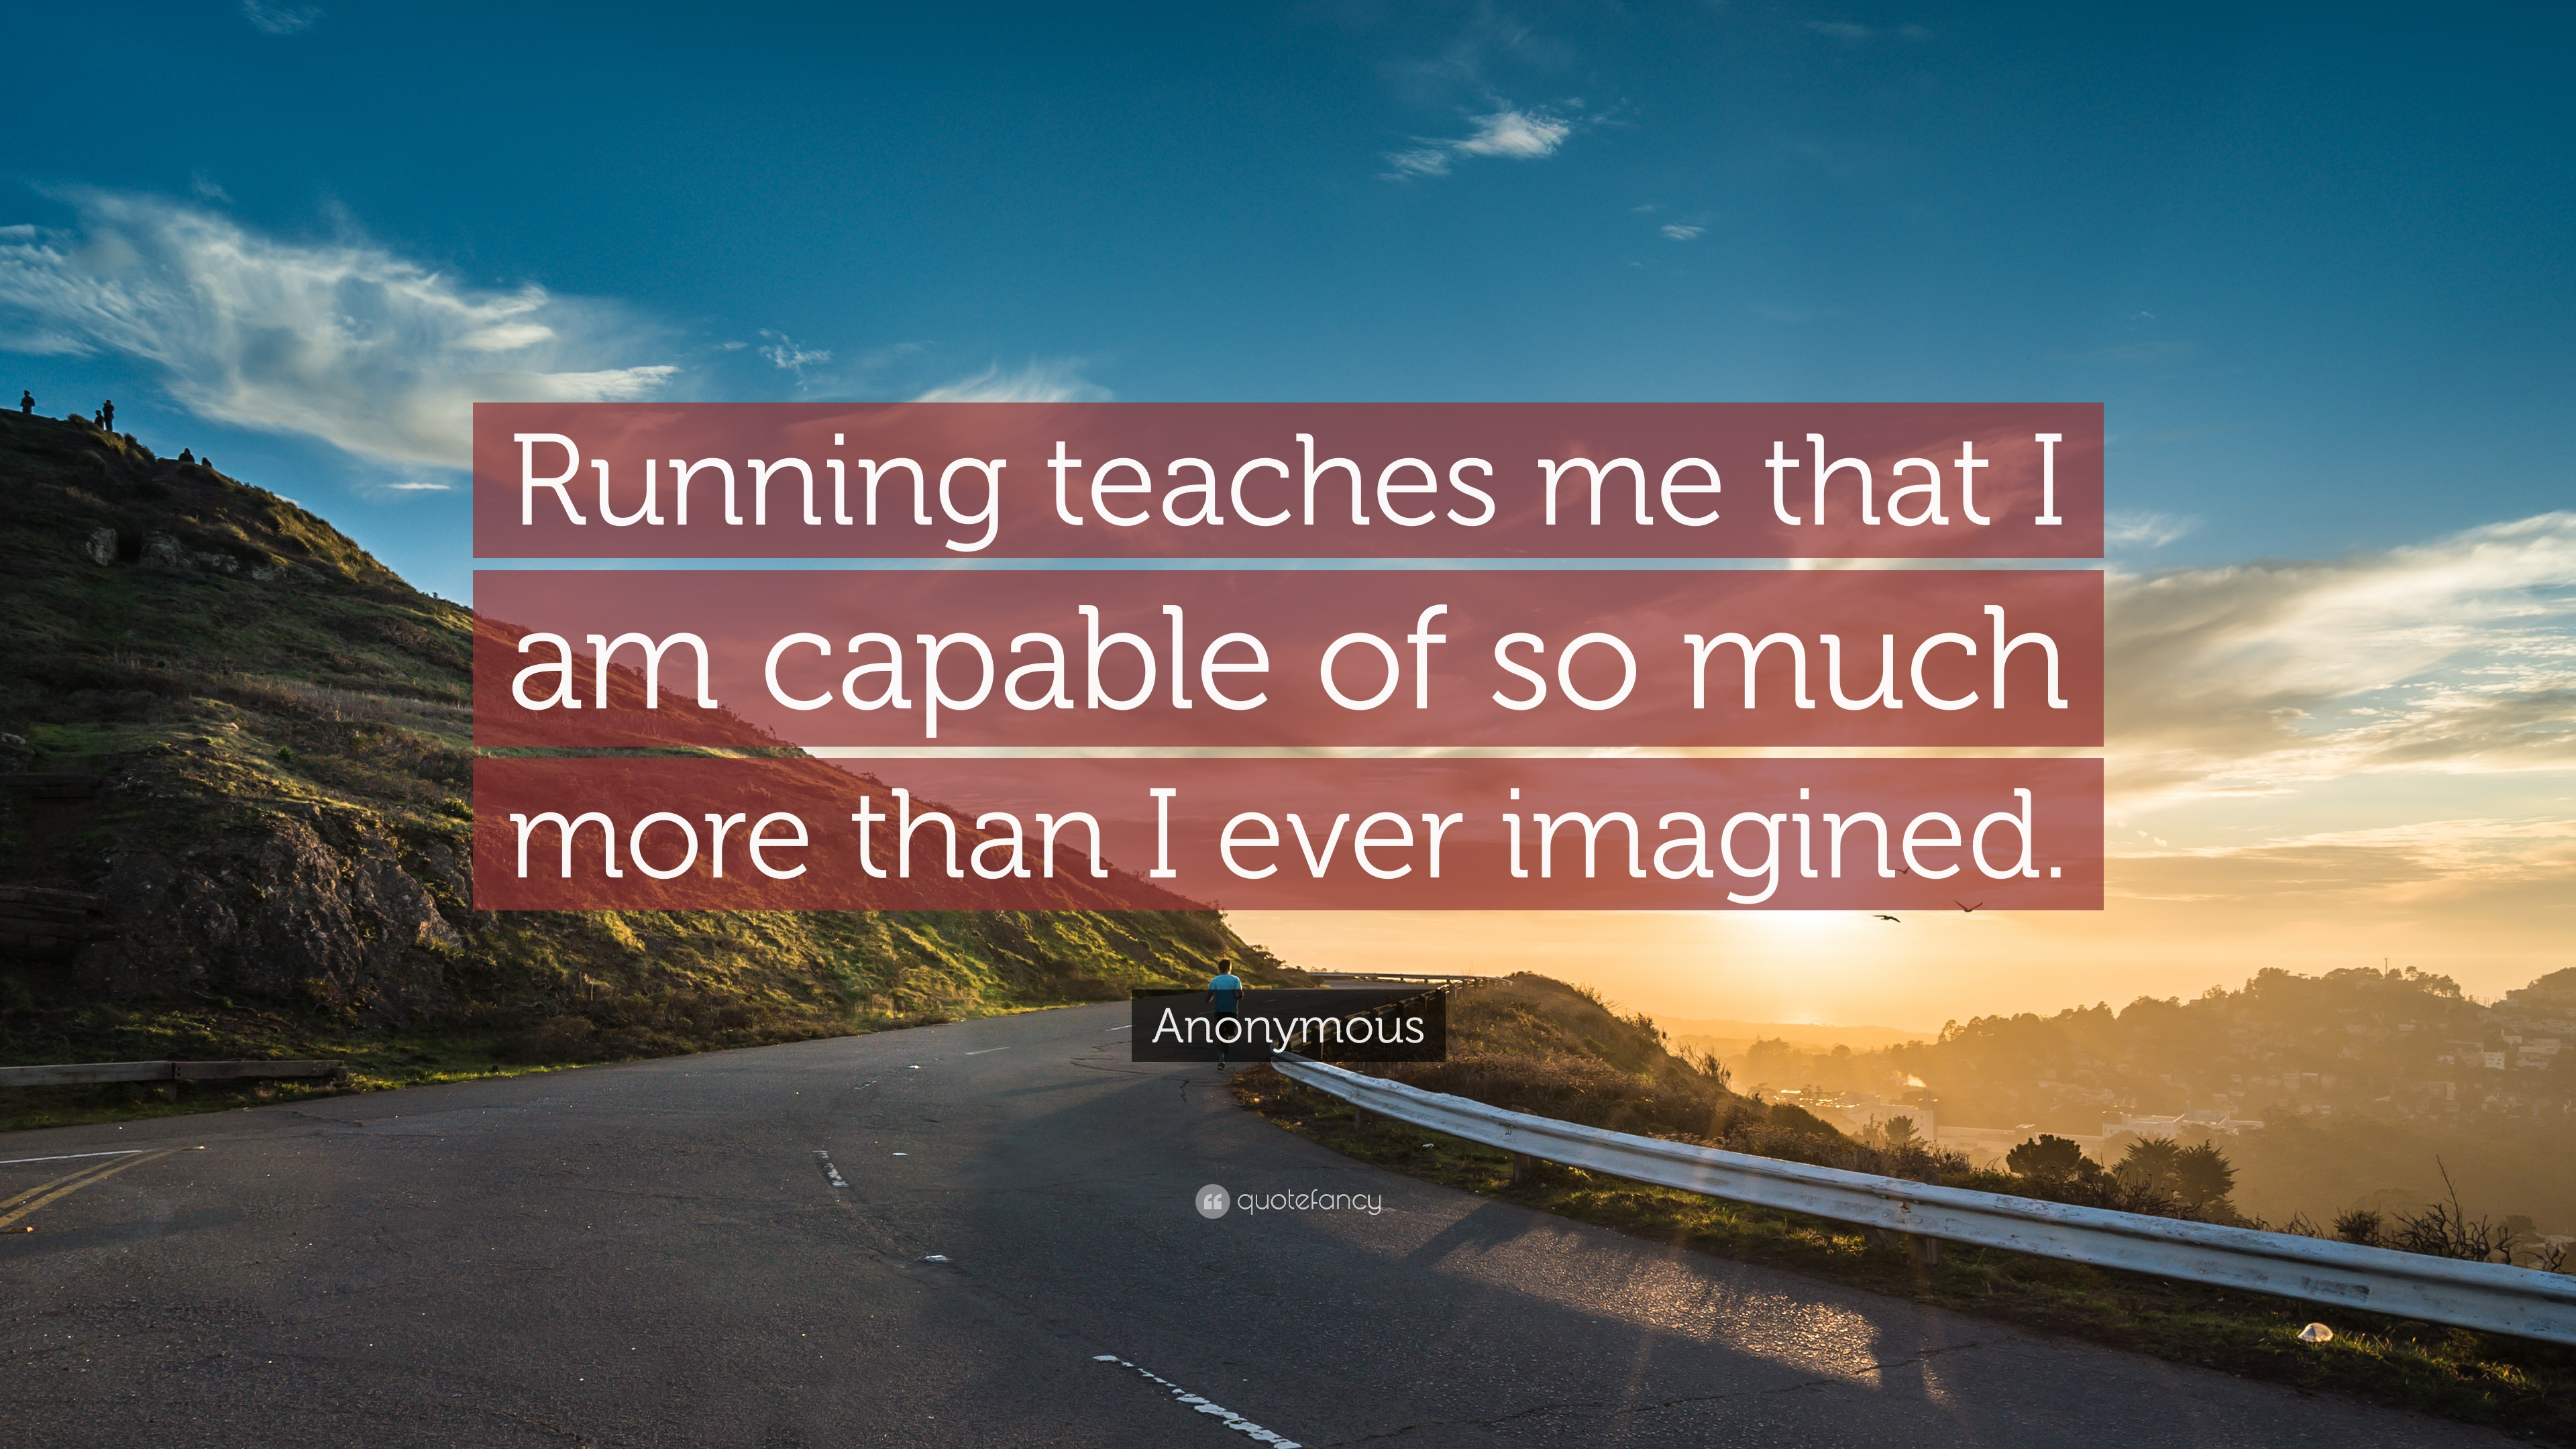 55 Most Inspirational Running Quotes Of All Time  Gravetics